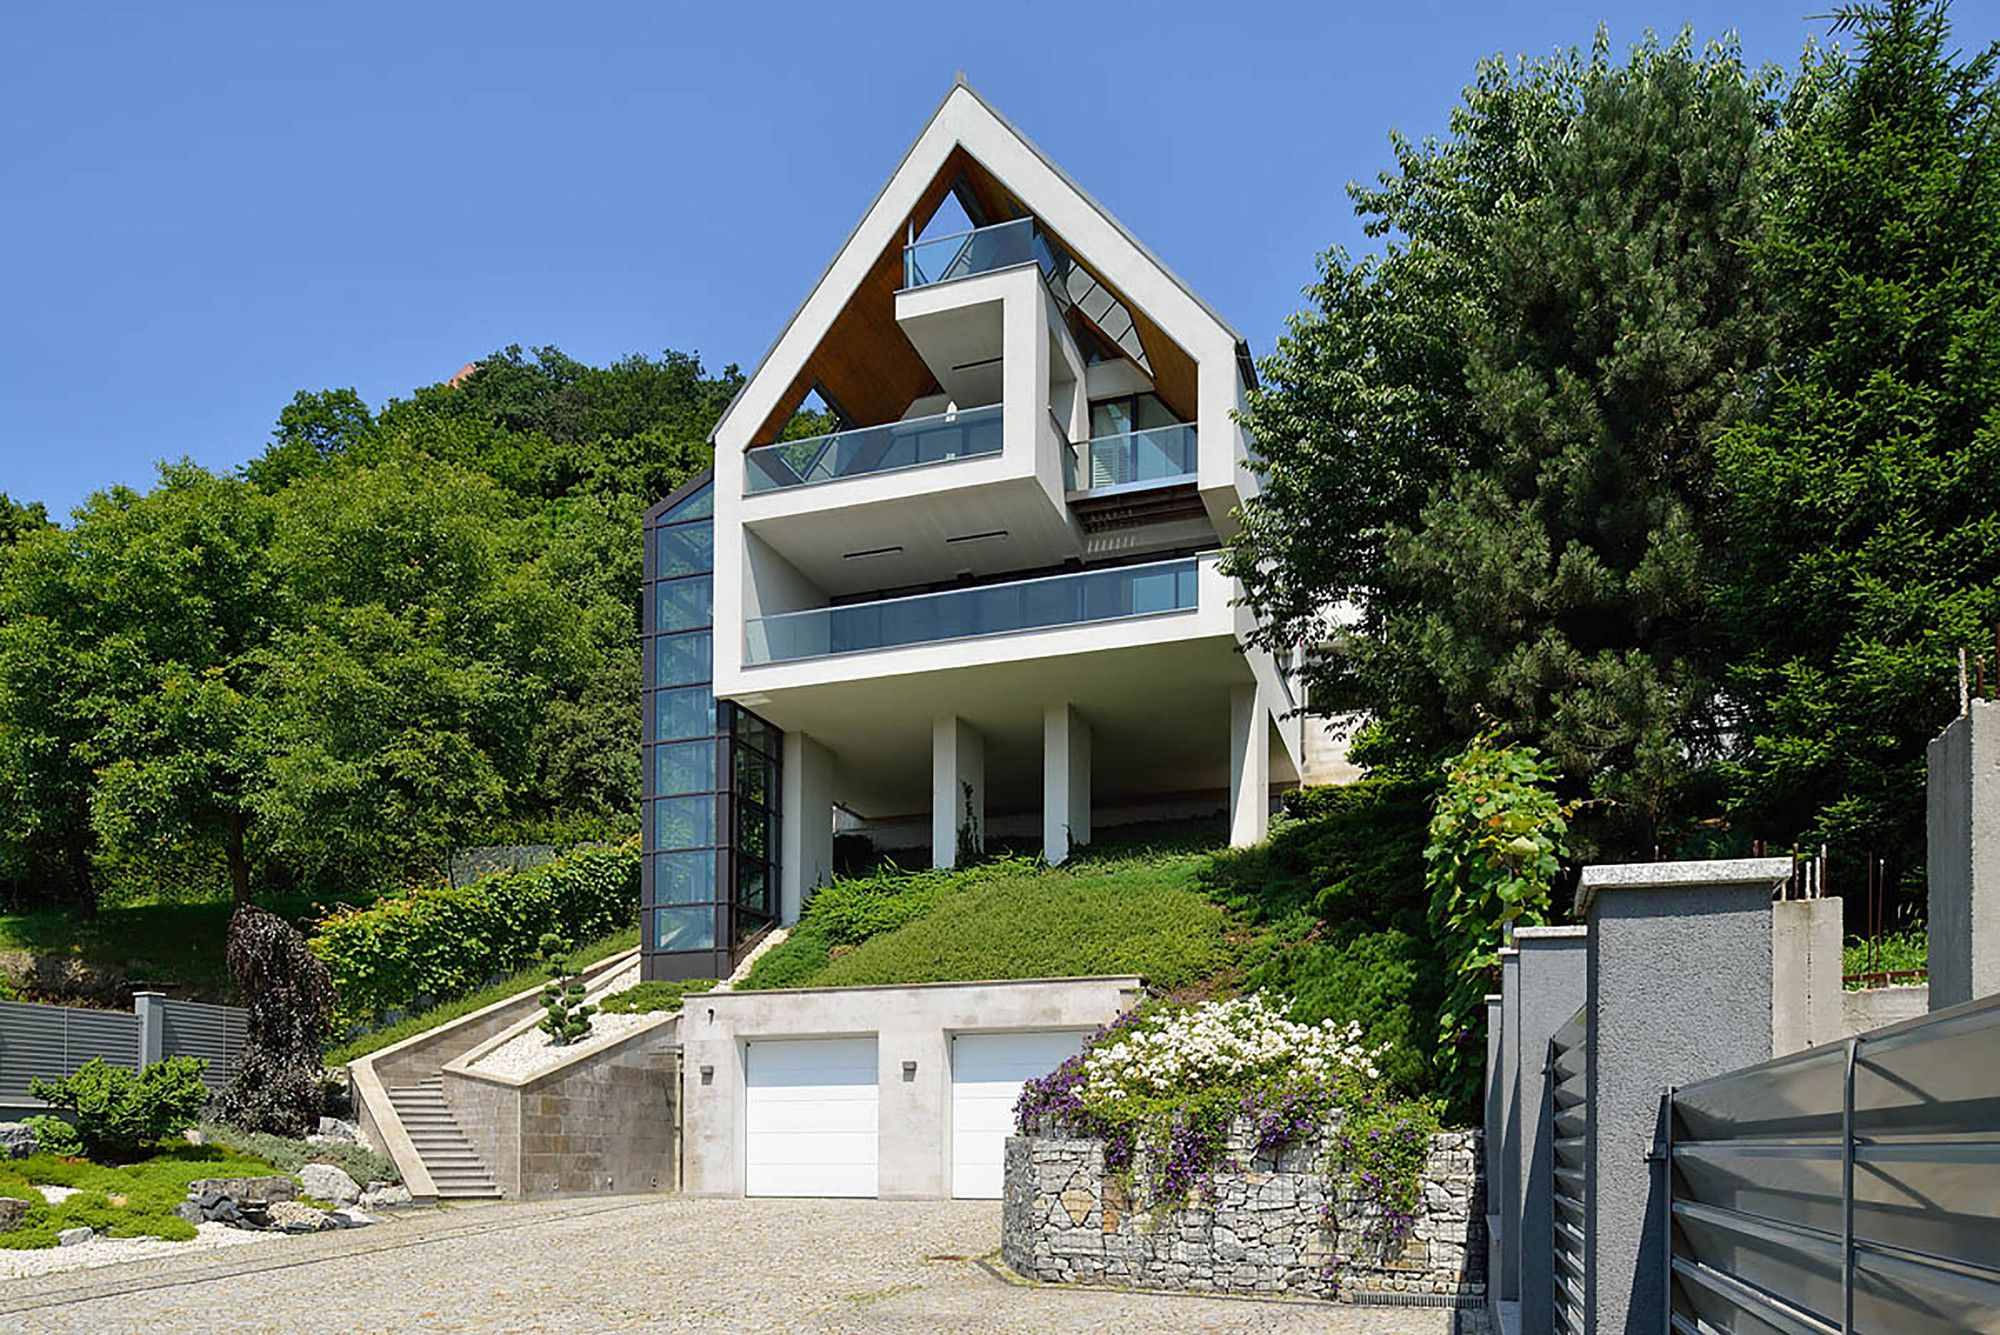 A house on a slope connects to its surroundings through a for Steep hillside house plans